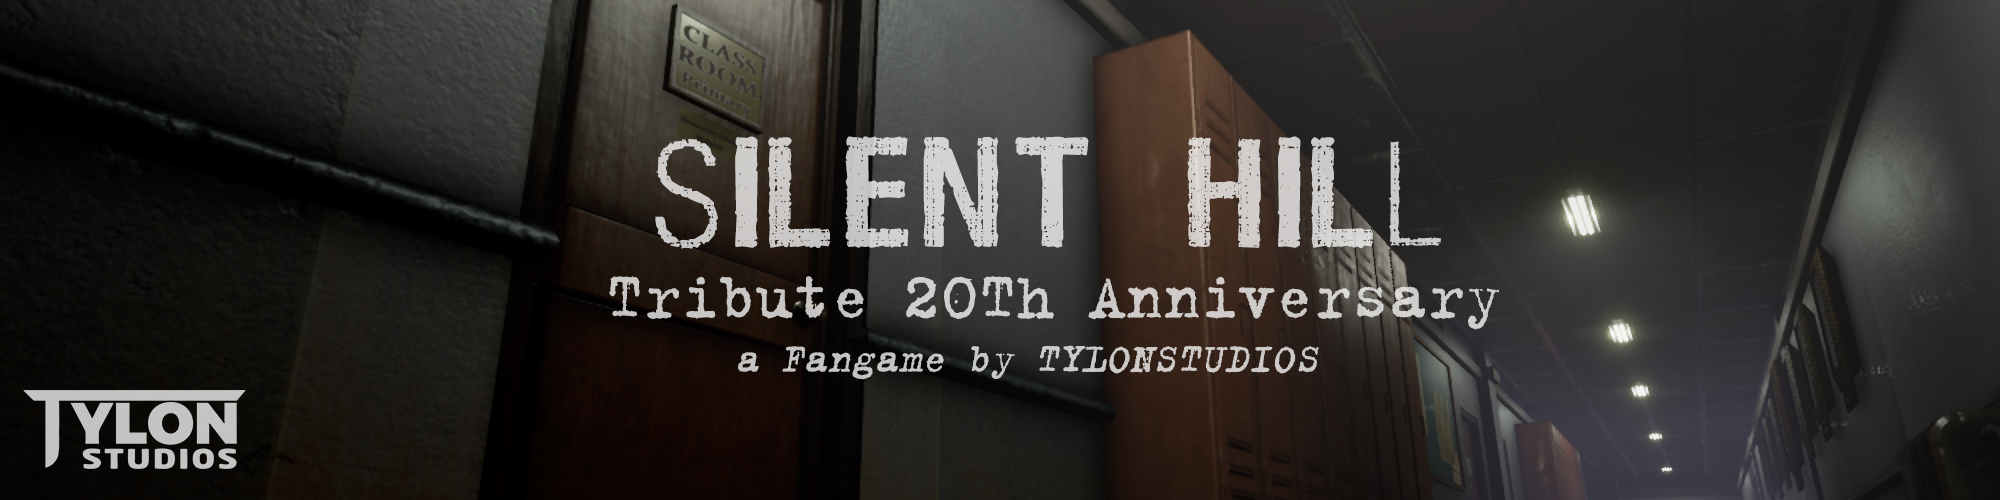 Silent Hill Tribute Fangame